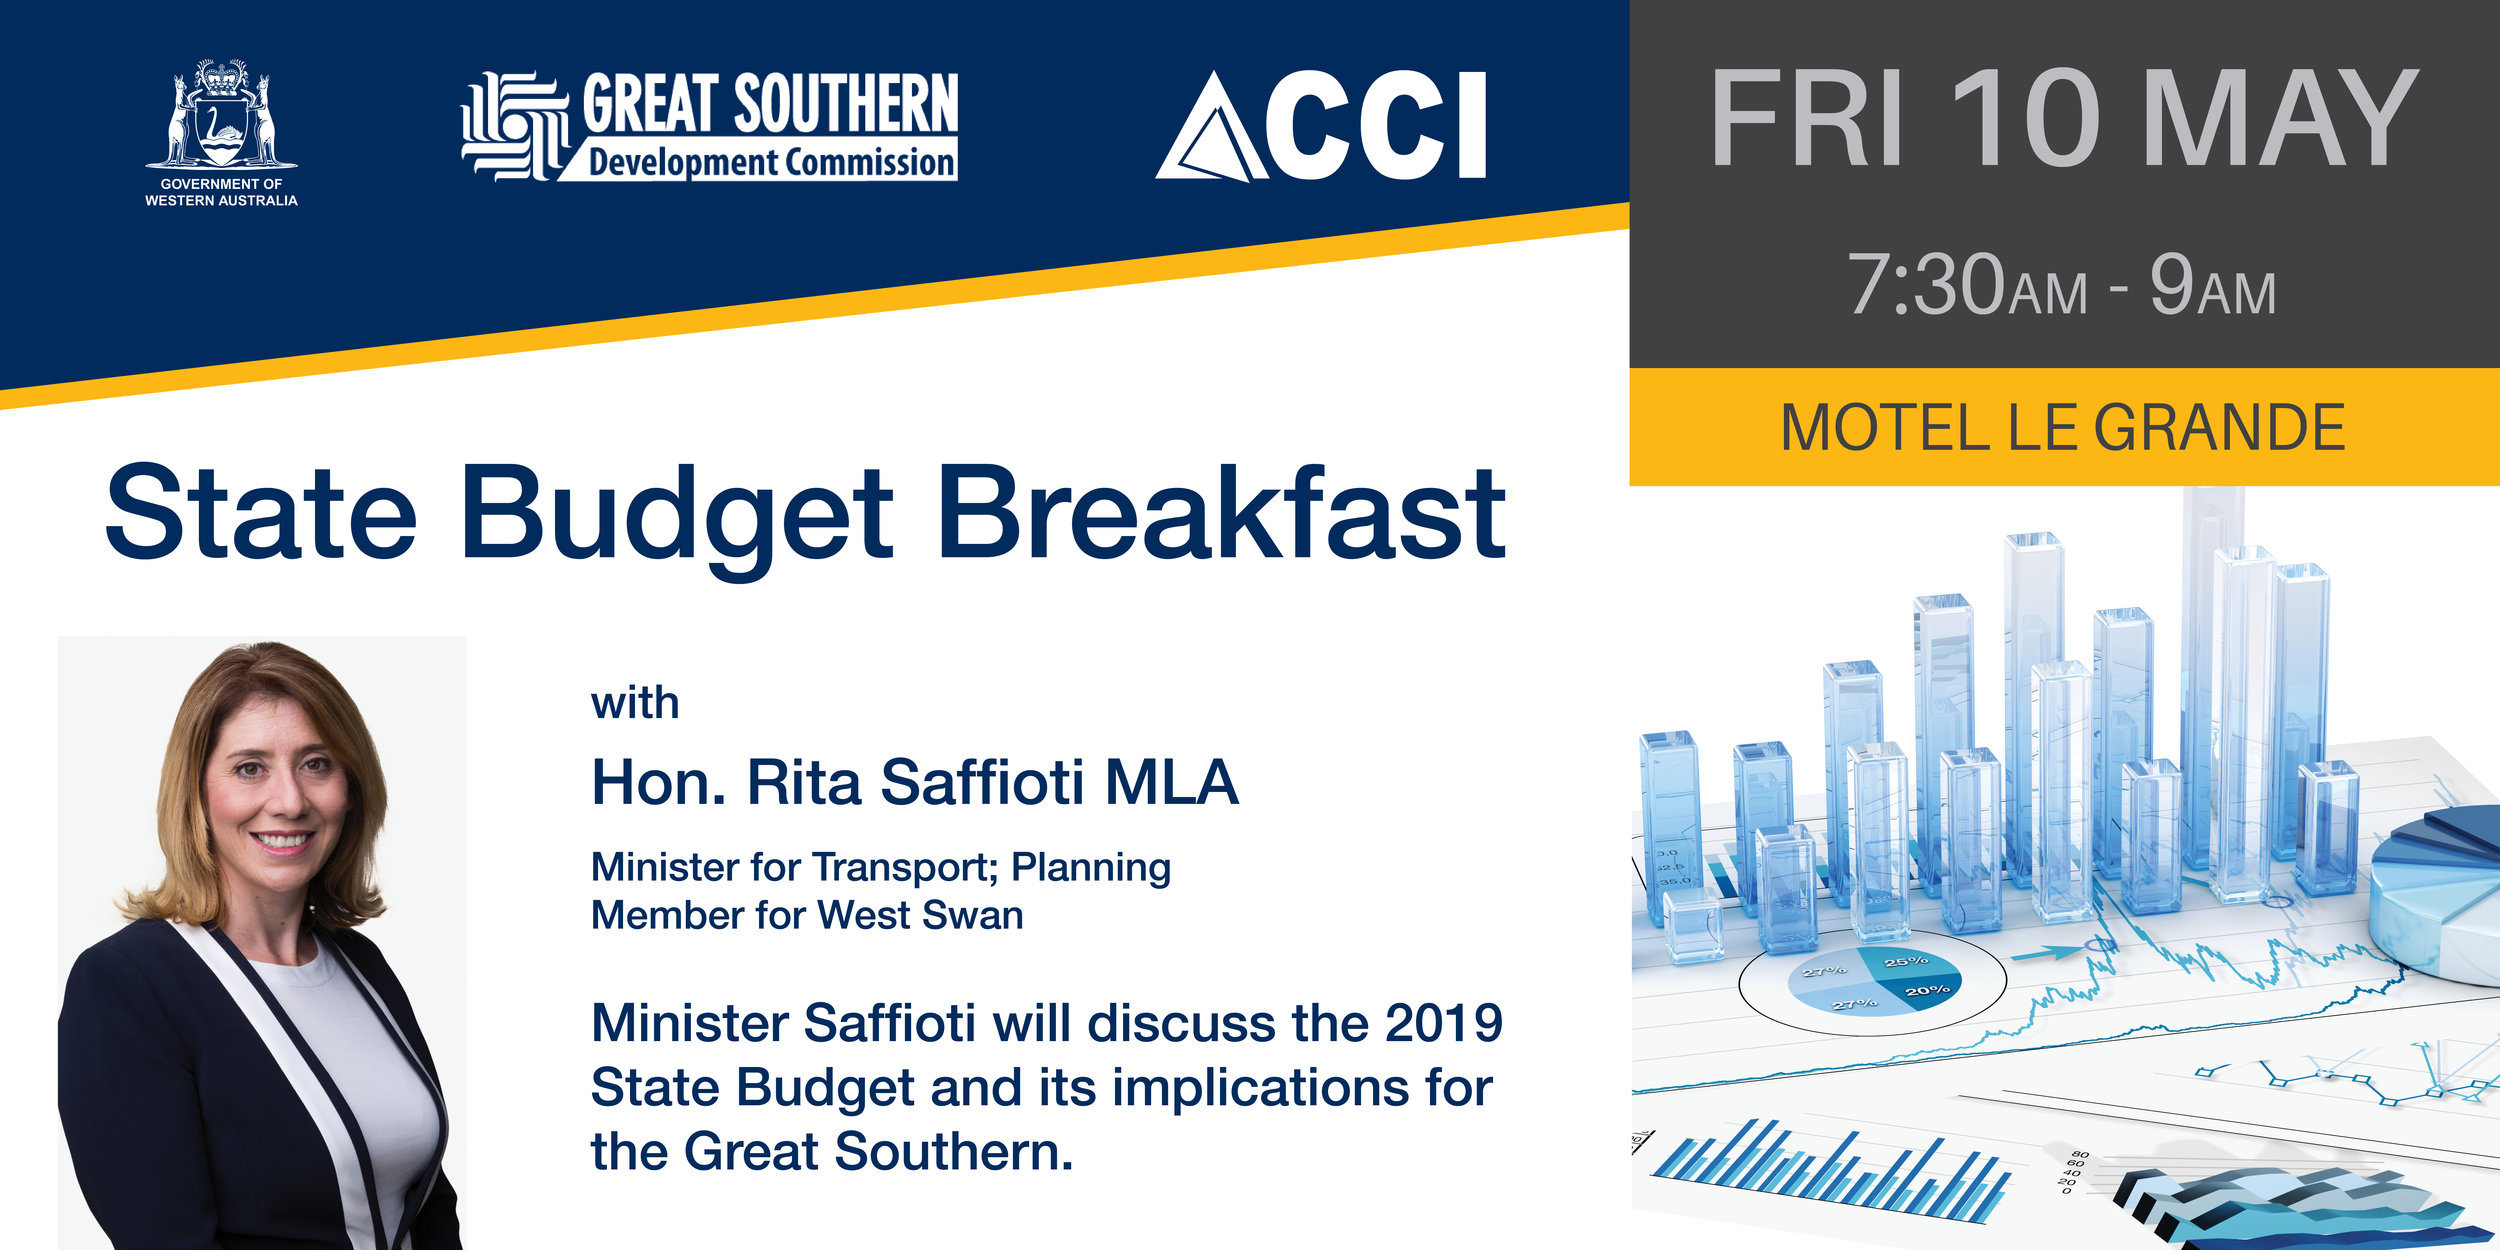 State Budget Breakfast Eventbrite Cover Pic.jpg